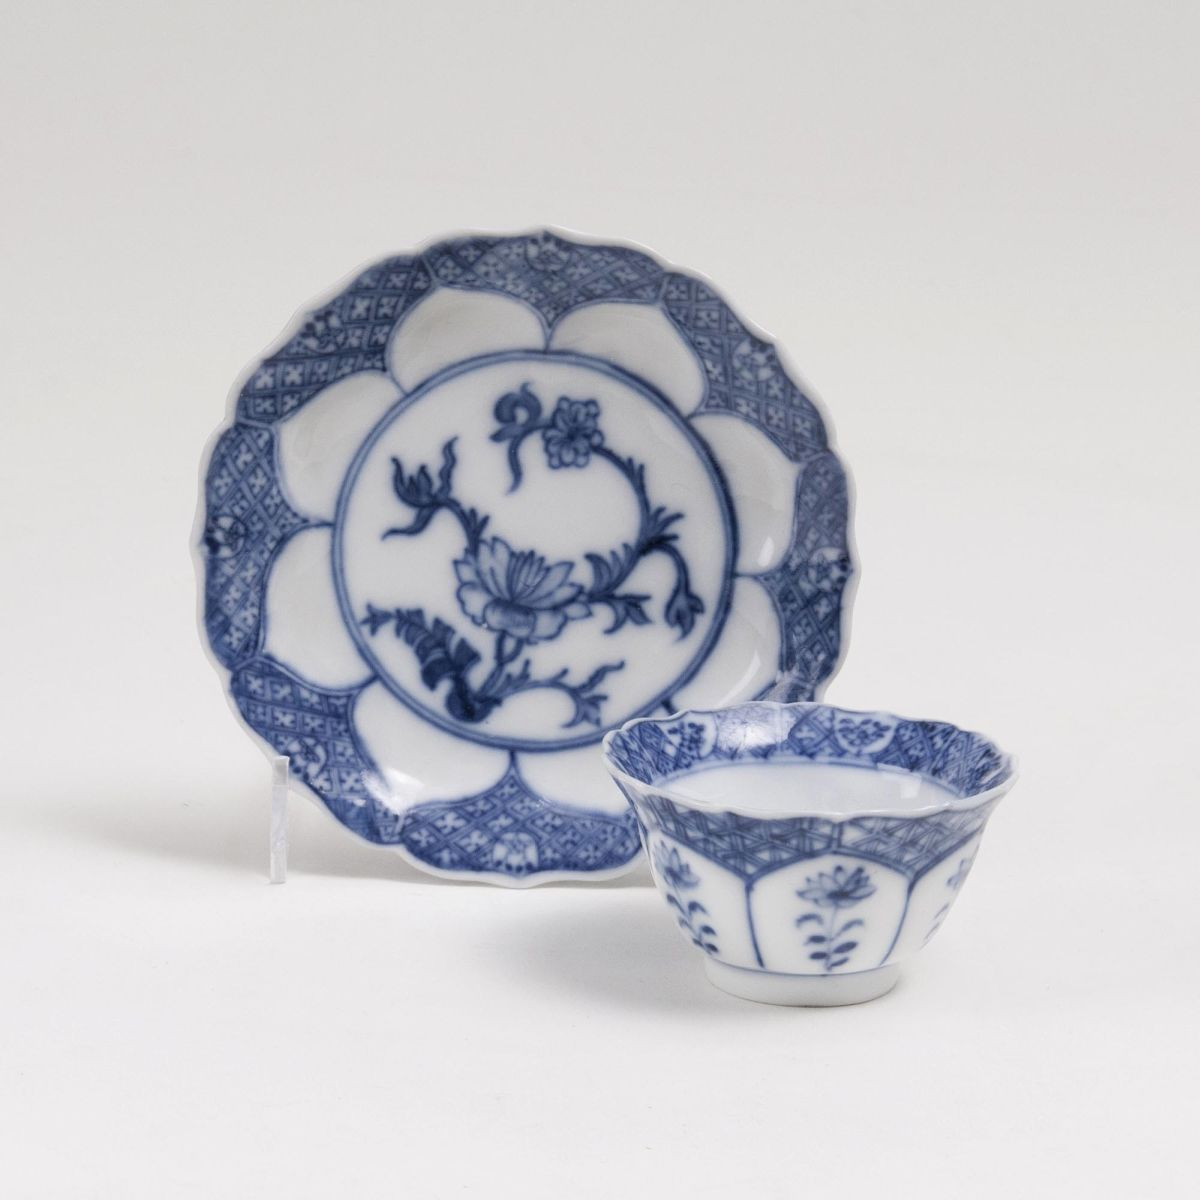 An early Blue and White Bowl